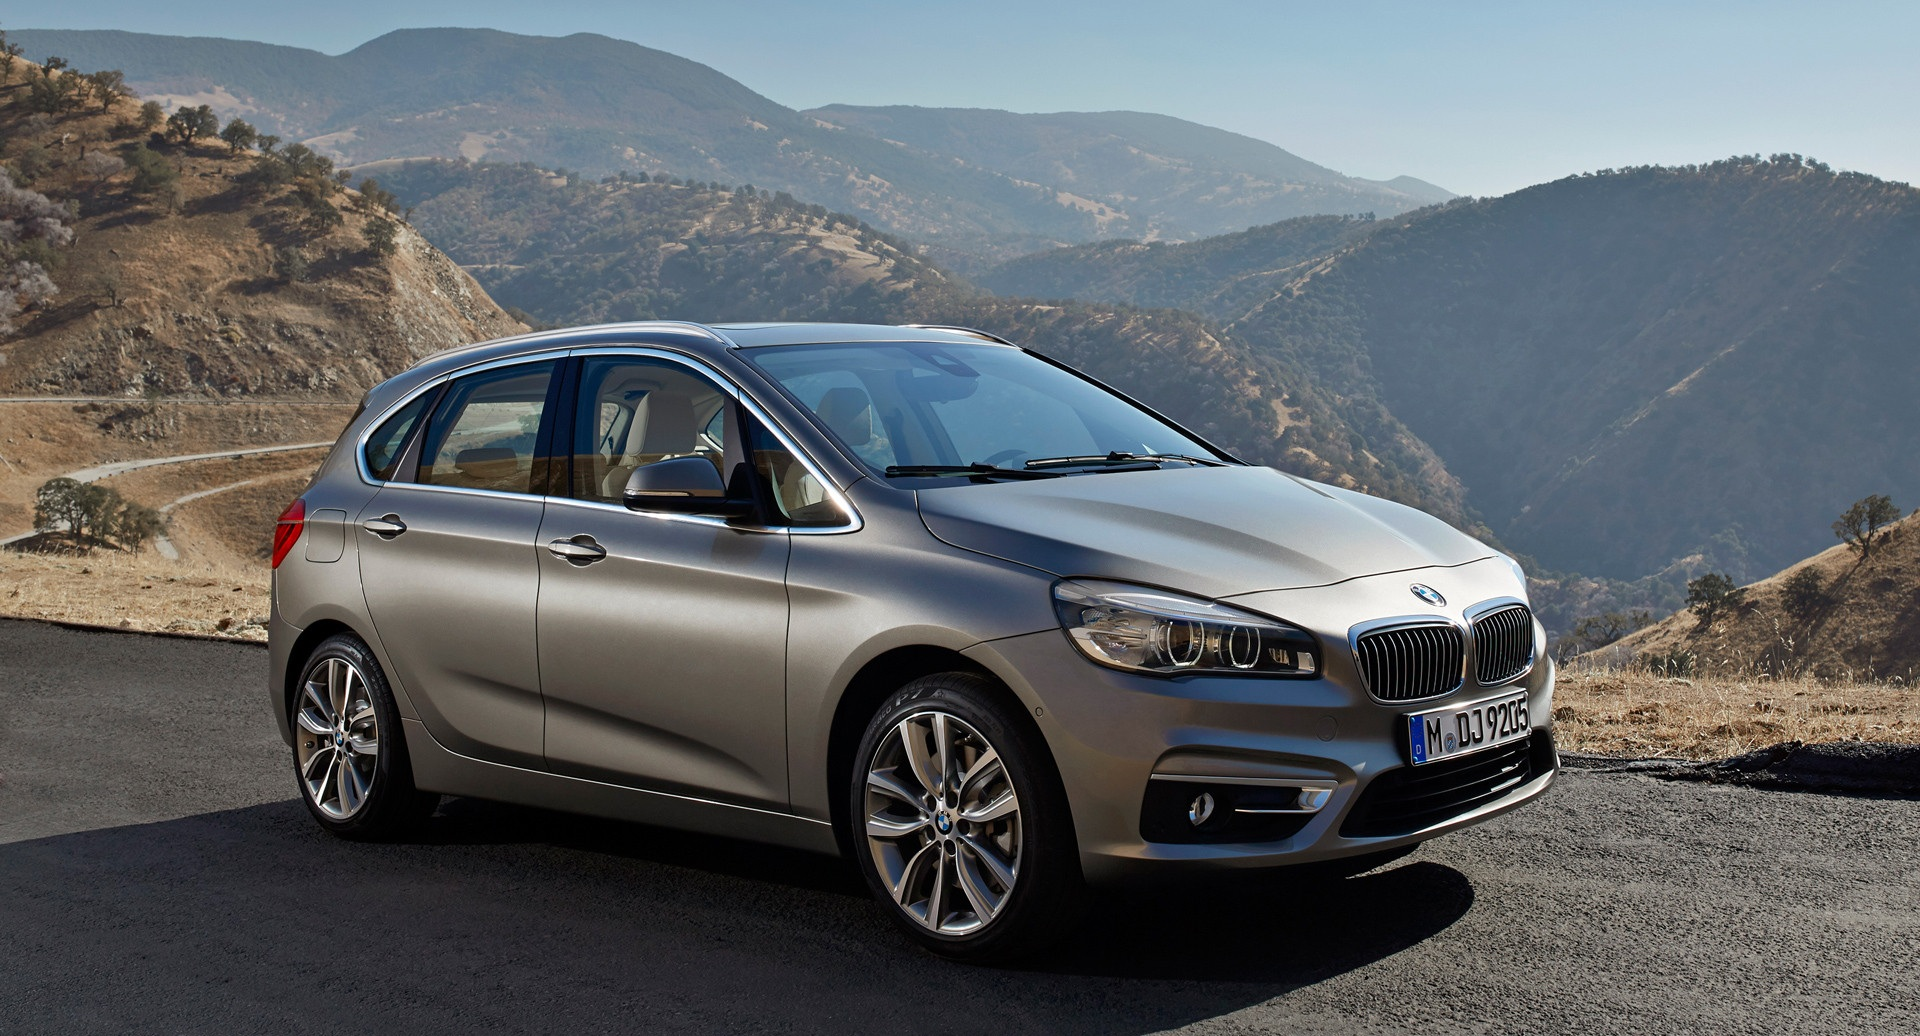 2015 Bmw 2 Series Active Tourer 225i Front Side View (View 11 of 11)